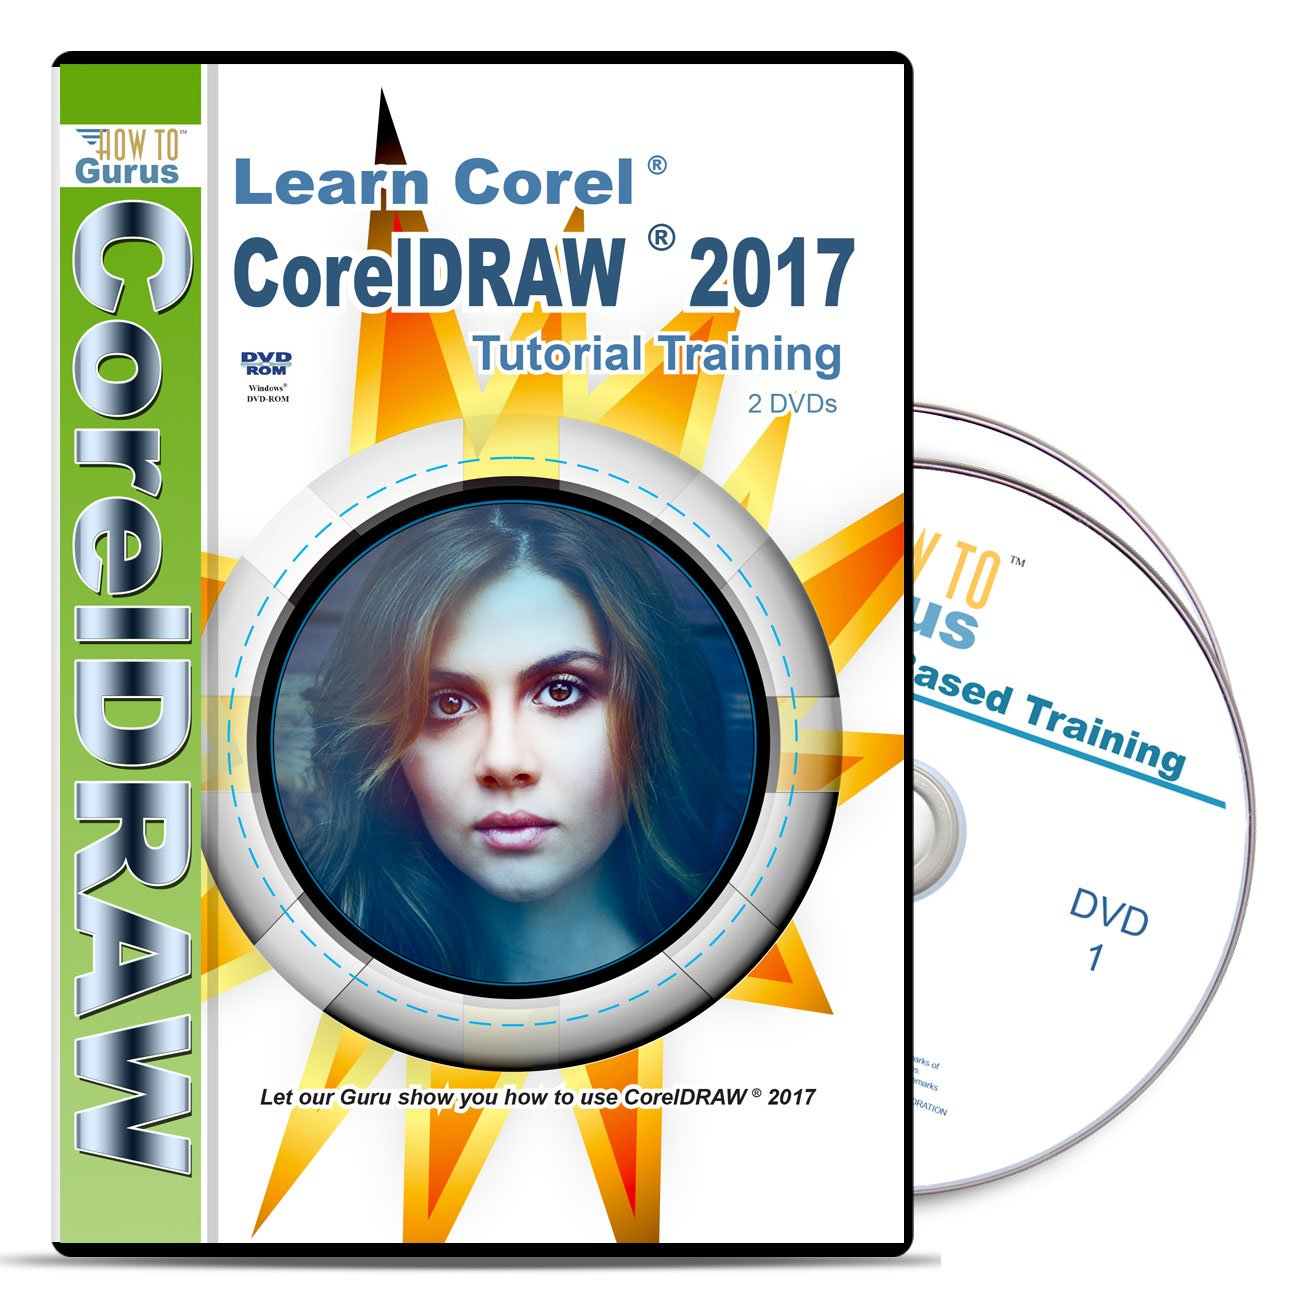 Corel CorelDRAW 2017 Tutorial Training on disc. 2 DVDs, over 11 hours in 182 videos